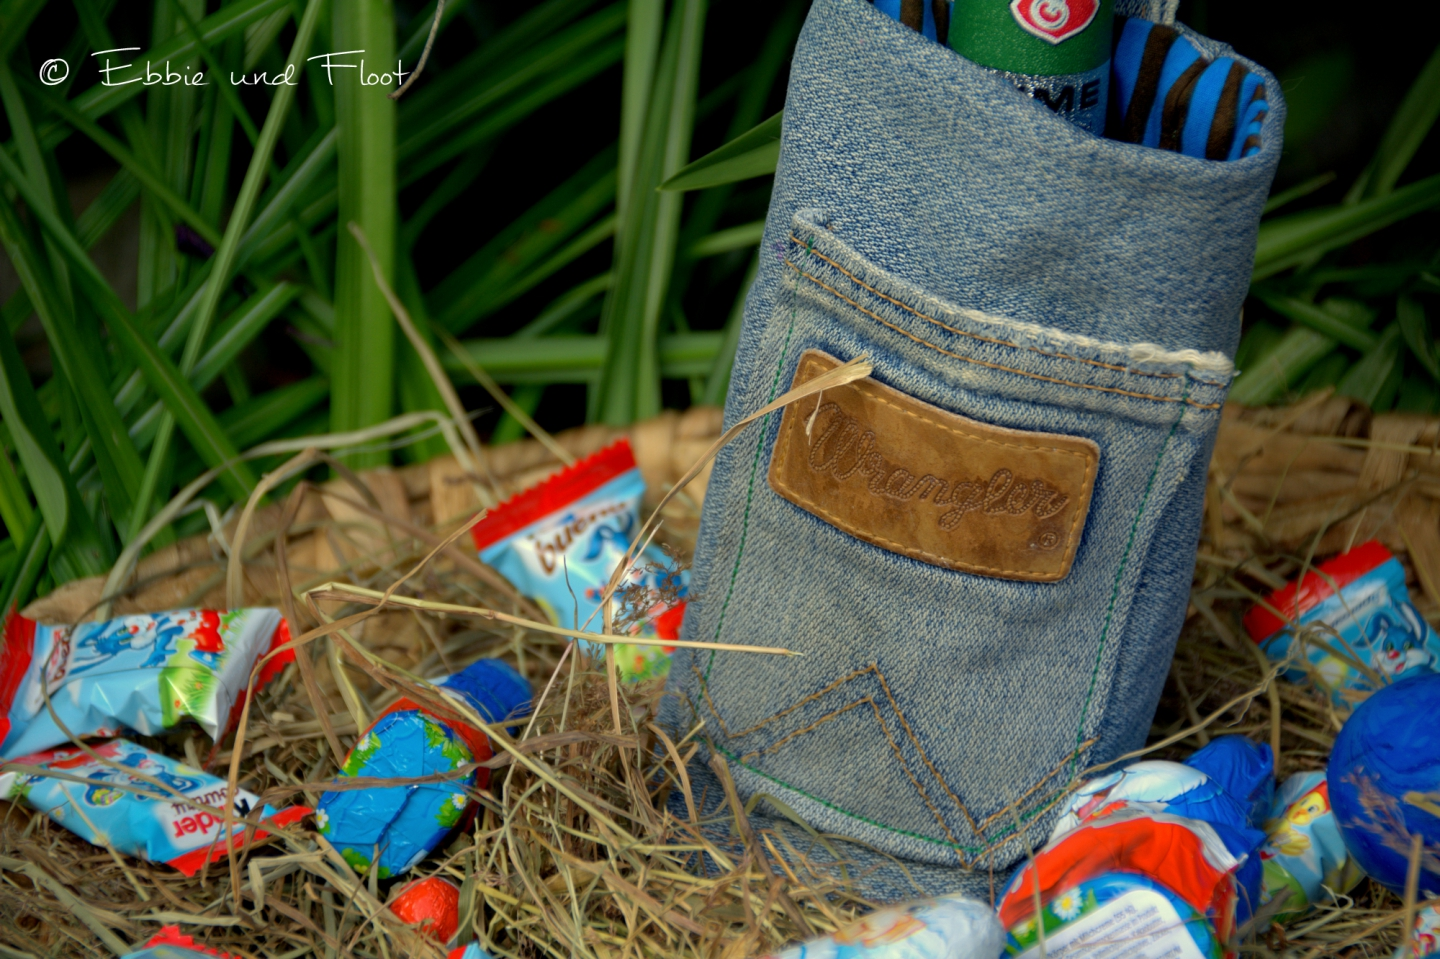 ebbie-und-floot_denim_Jeans_Flaschentasch_Flata_upcycling_0007.NEF